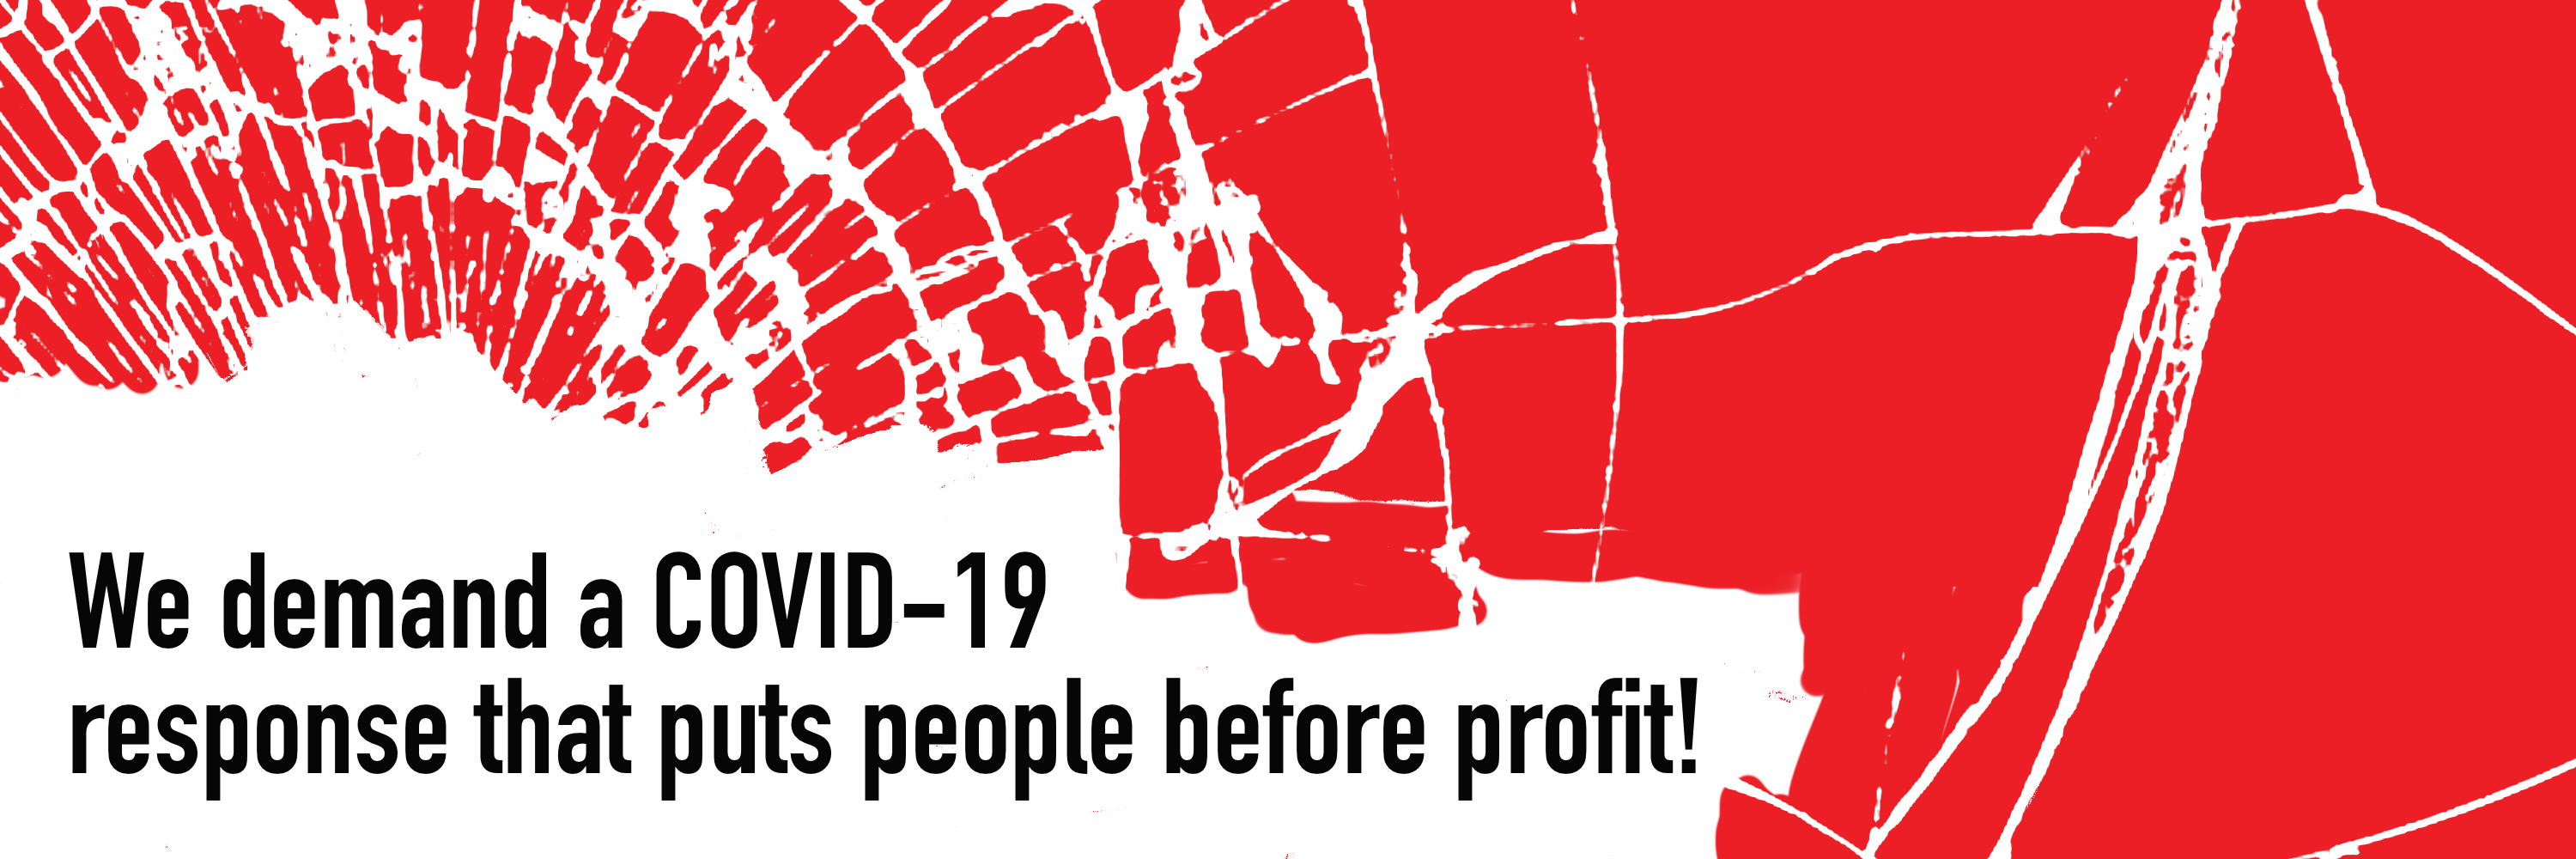 We Demand a COVID-19 Response that puts People before Profit